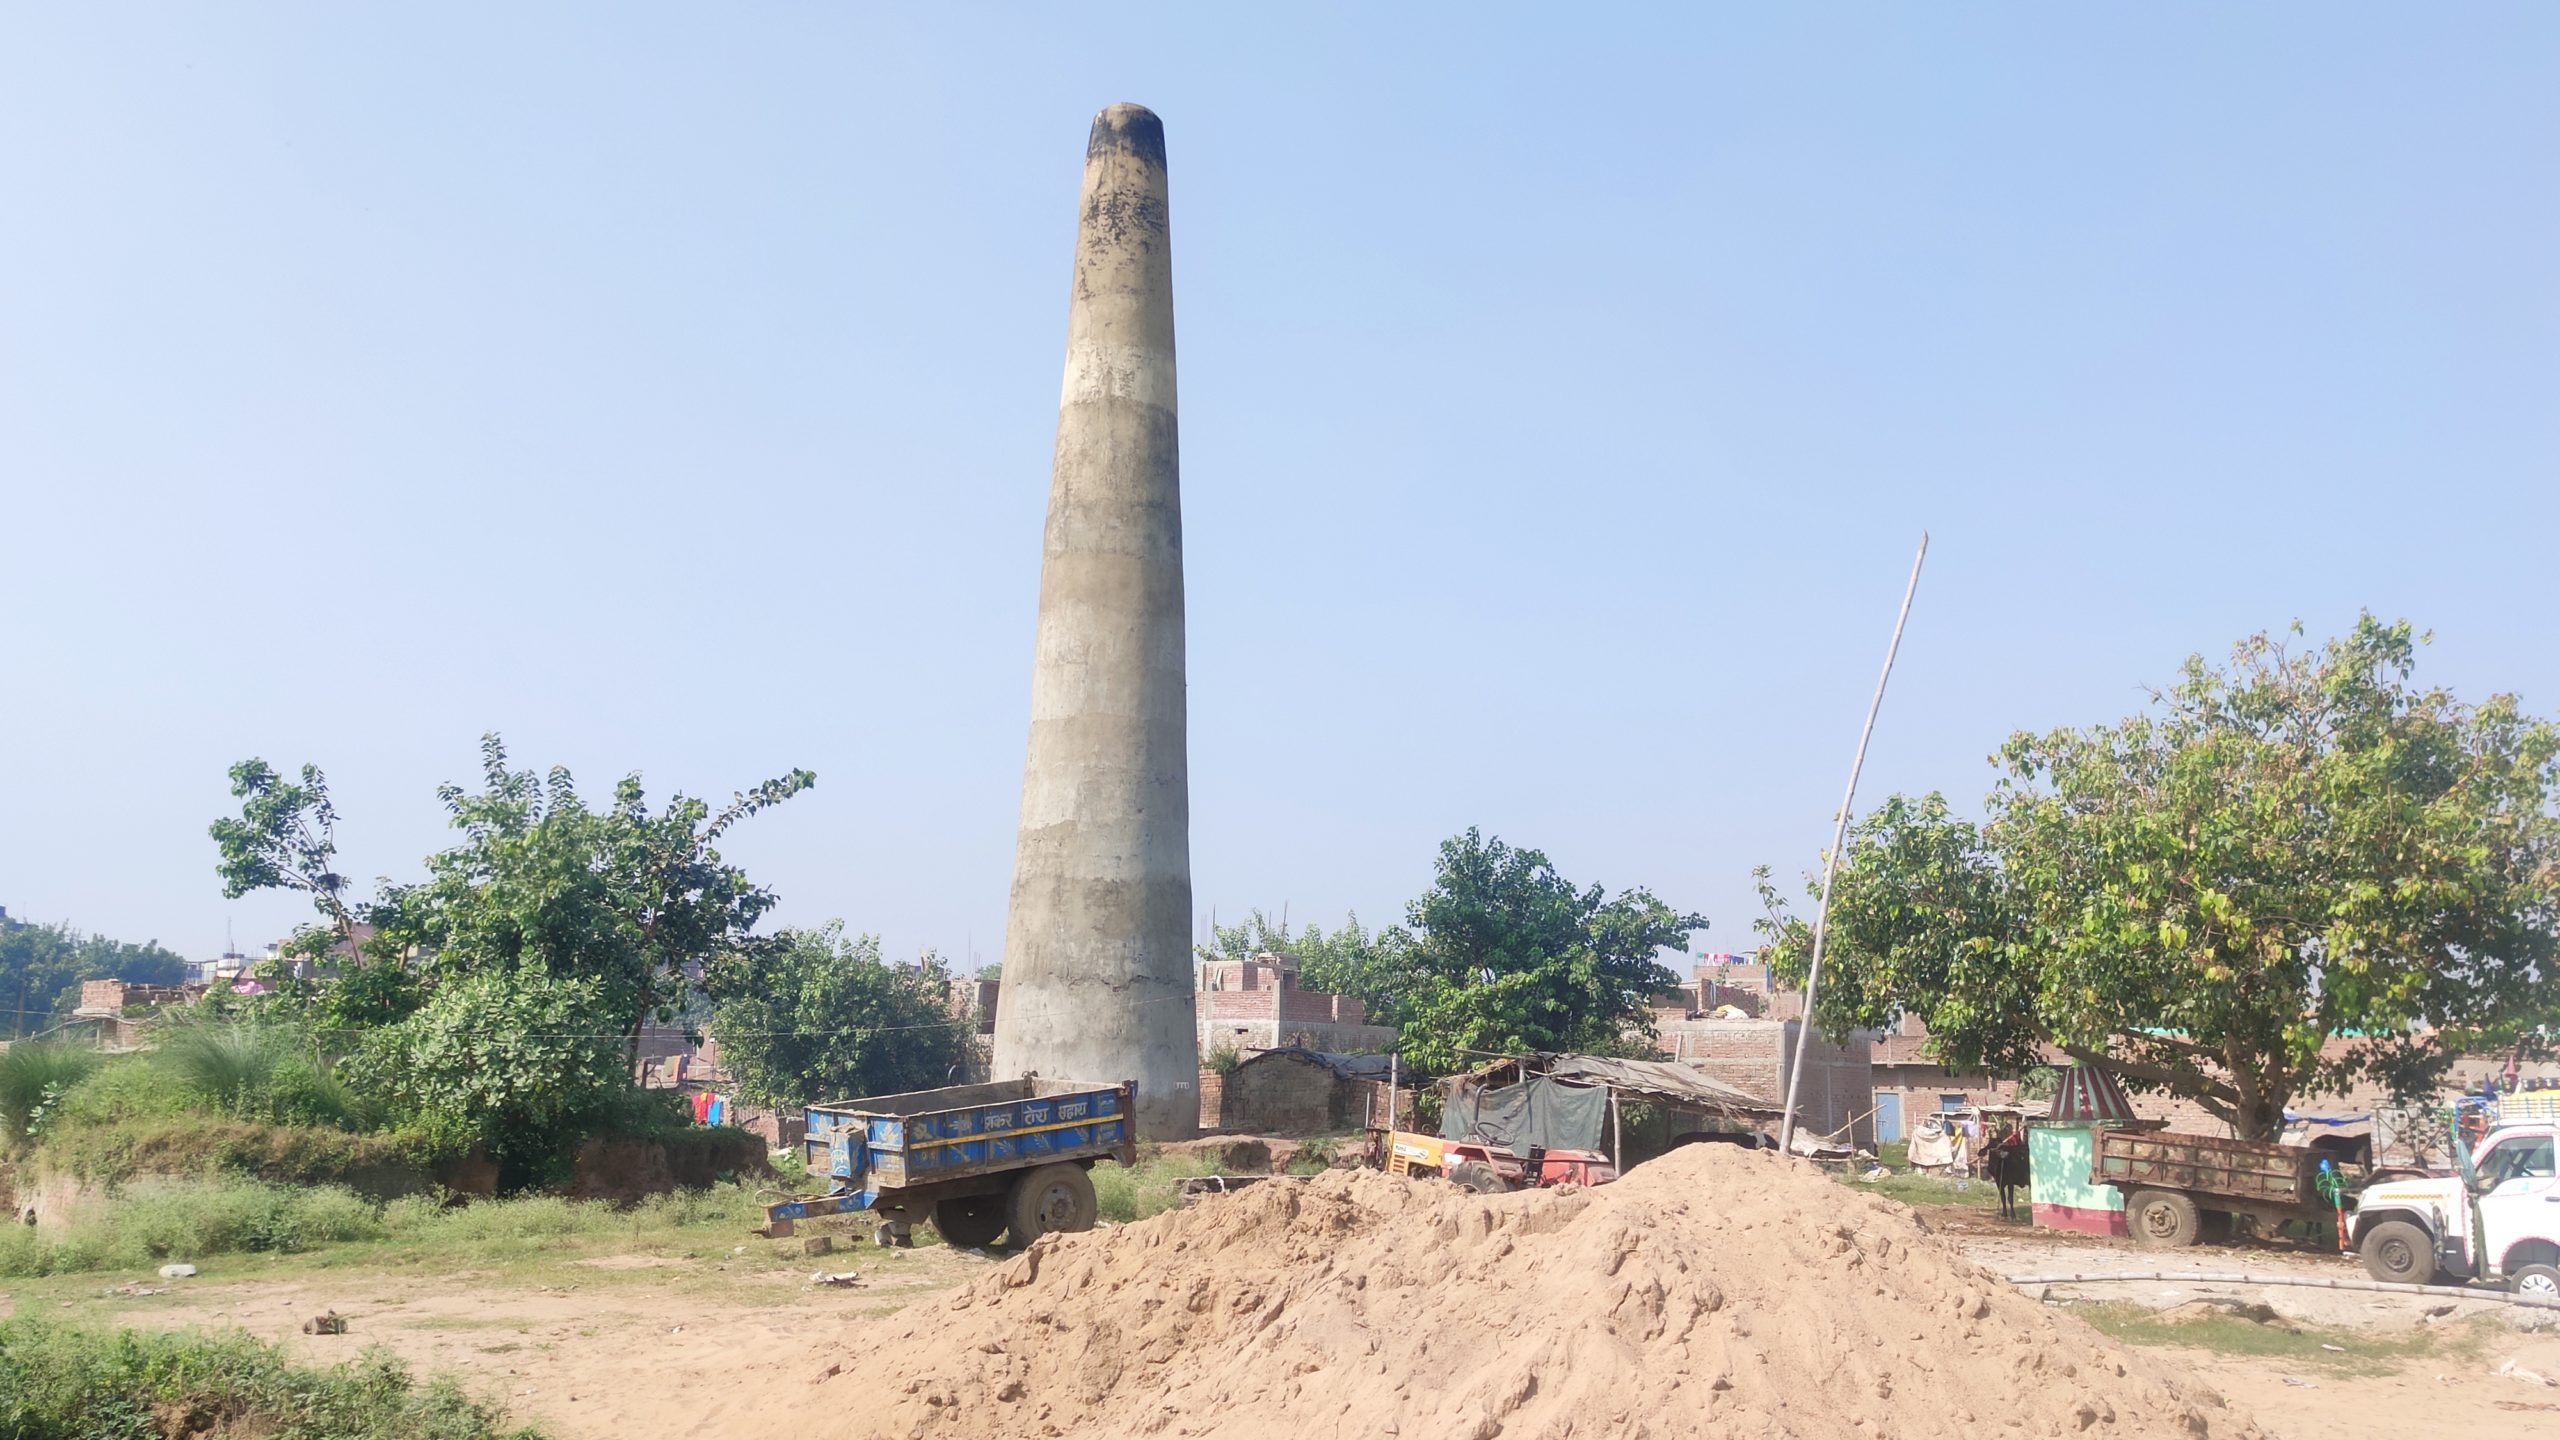 Brick kilns are the major source of air pollution in Bihar Photo Samir Verma